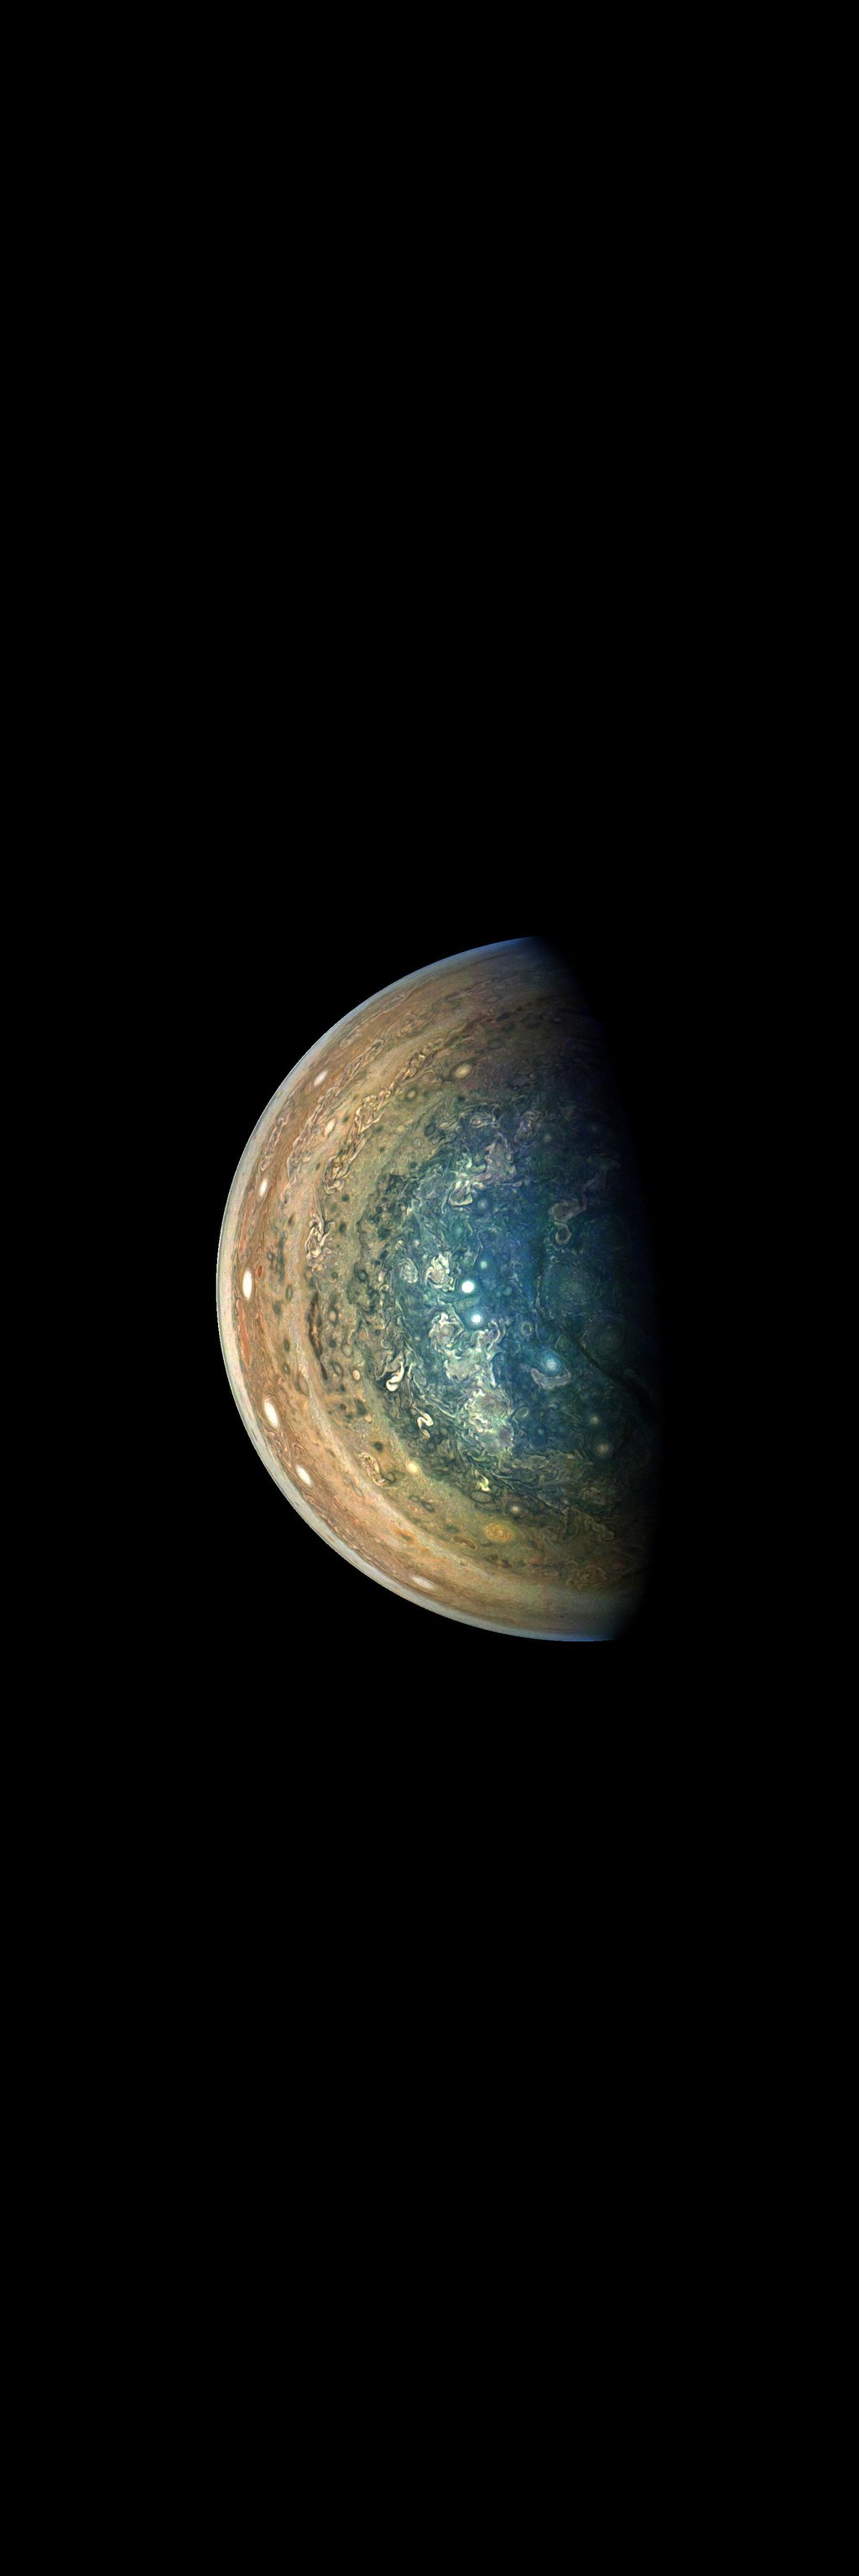 This image of Jupiter's swirling south polar region was captured by NASA's Juno spacecraft as it neared completion of its tenth close flyby of the gas giant planet.